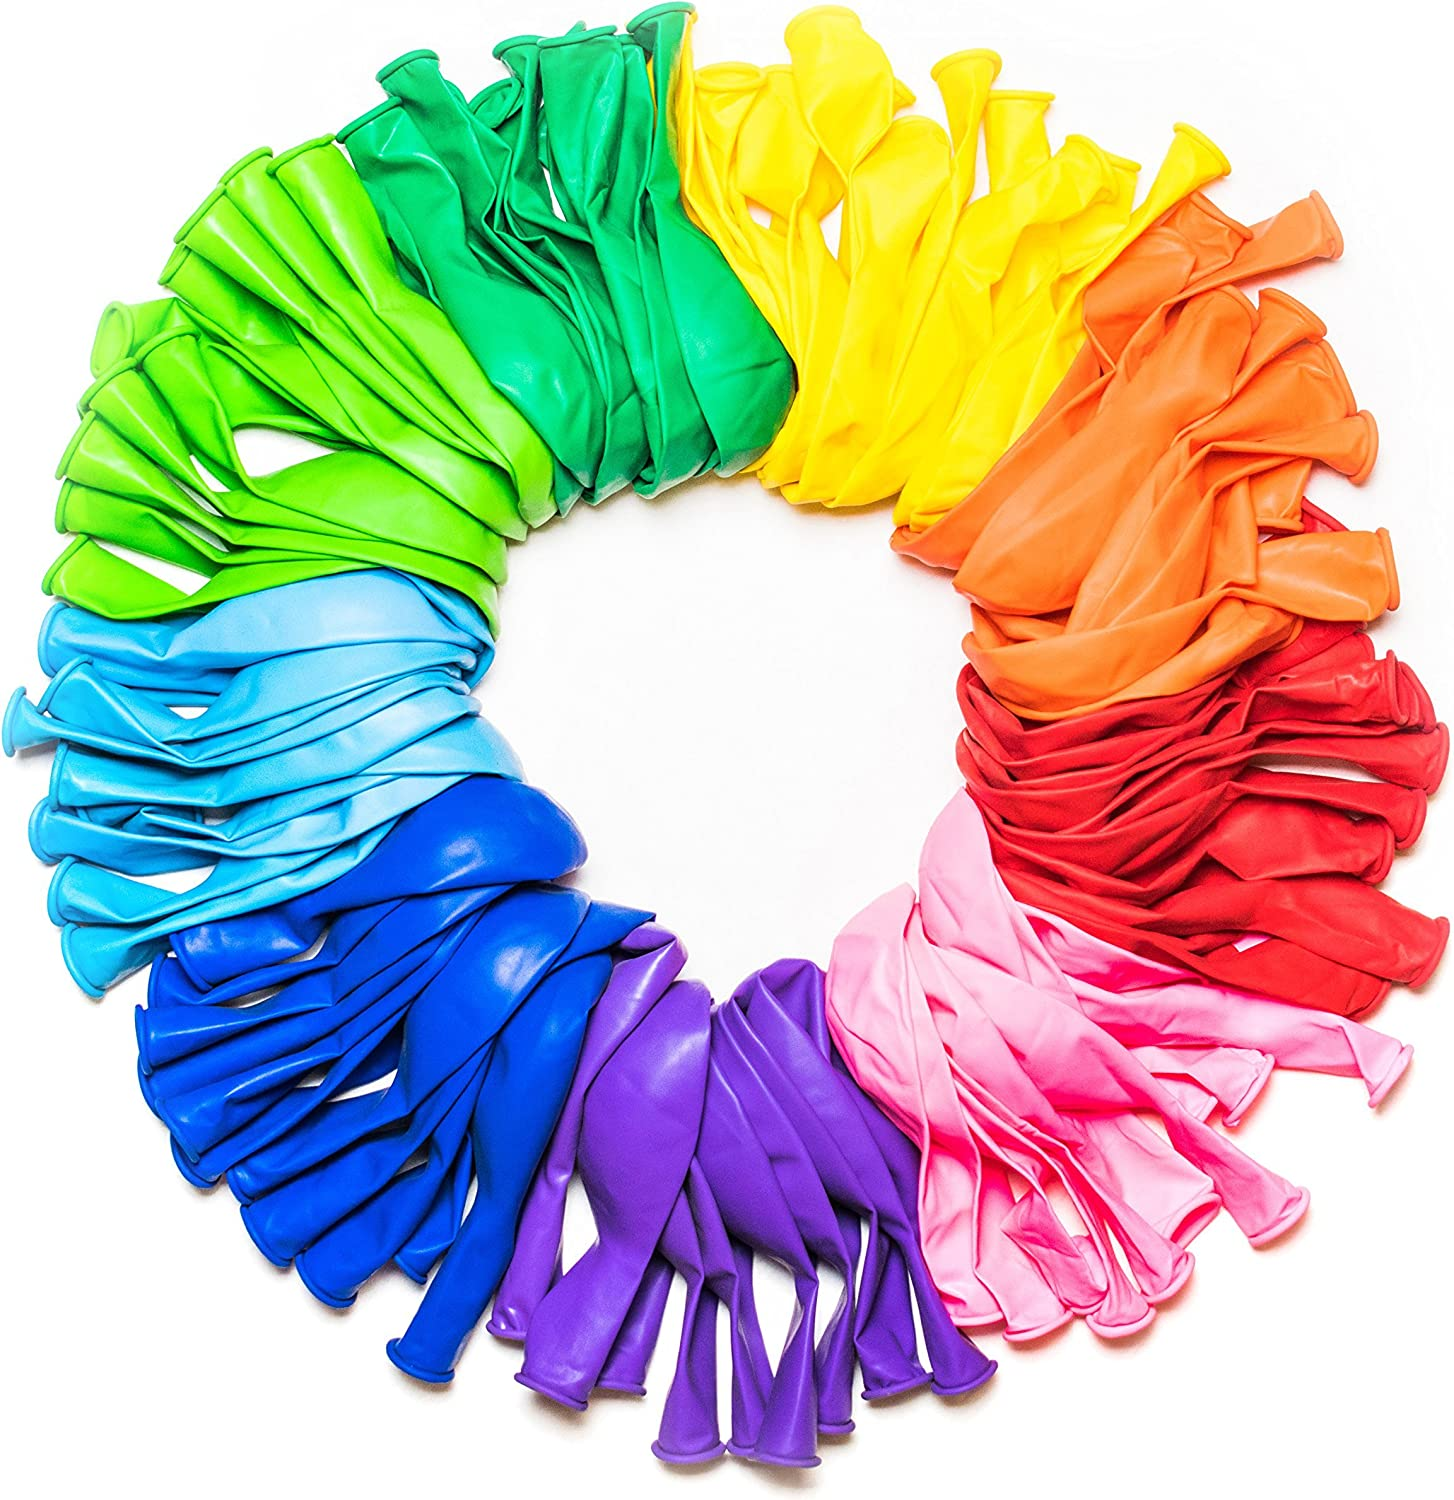 Dusico® Balloons Rainbow shopping Set 100 Pack 12 Assorted B Inches A surprise price is realized